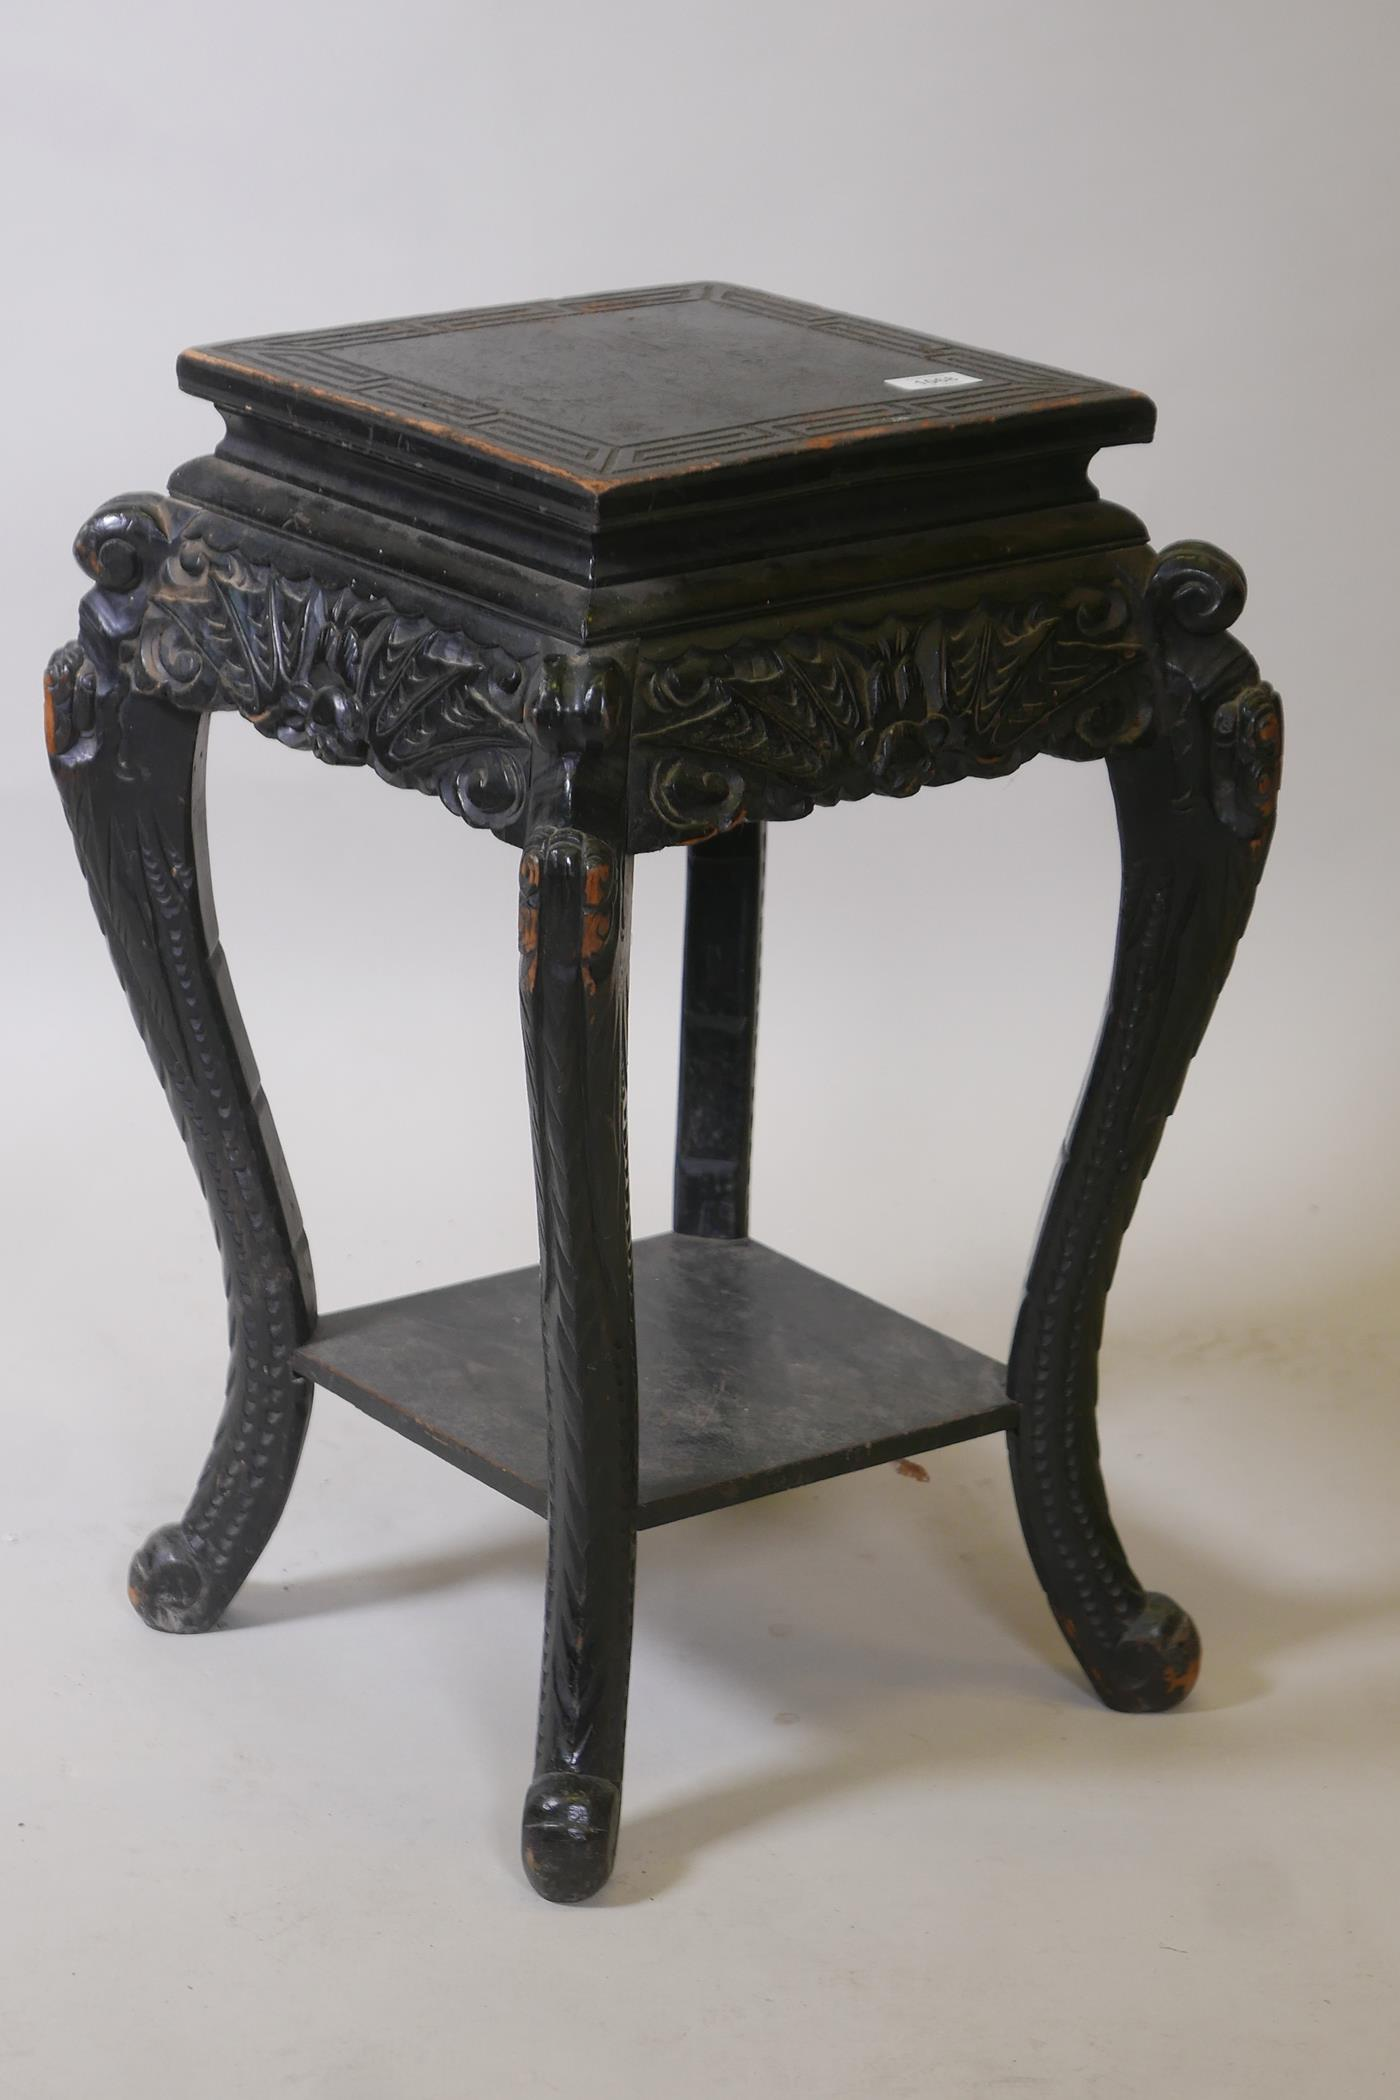 A Chinese two tier ebonised wood stand, with carved bat frieze, raised on scrolled shaped